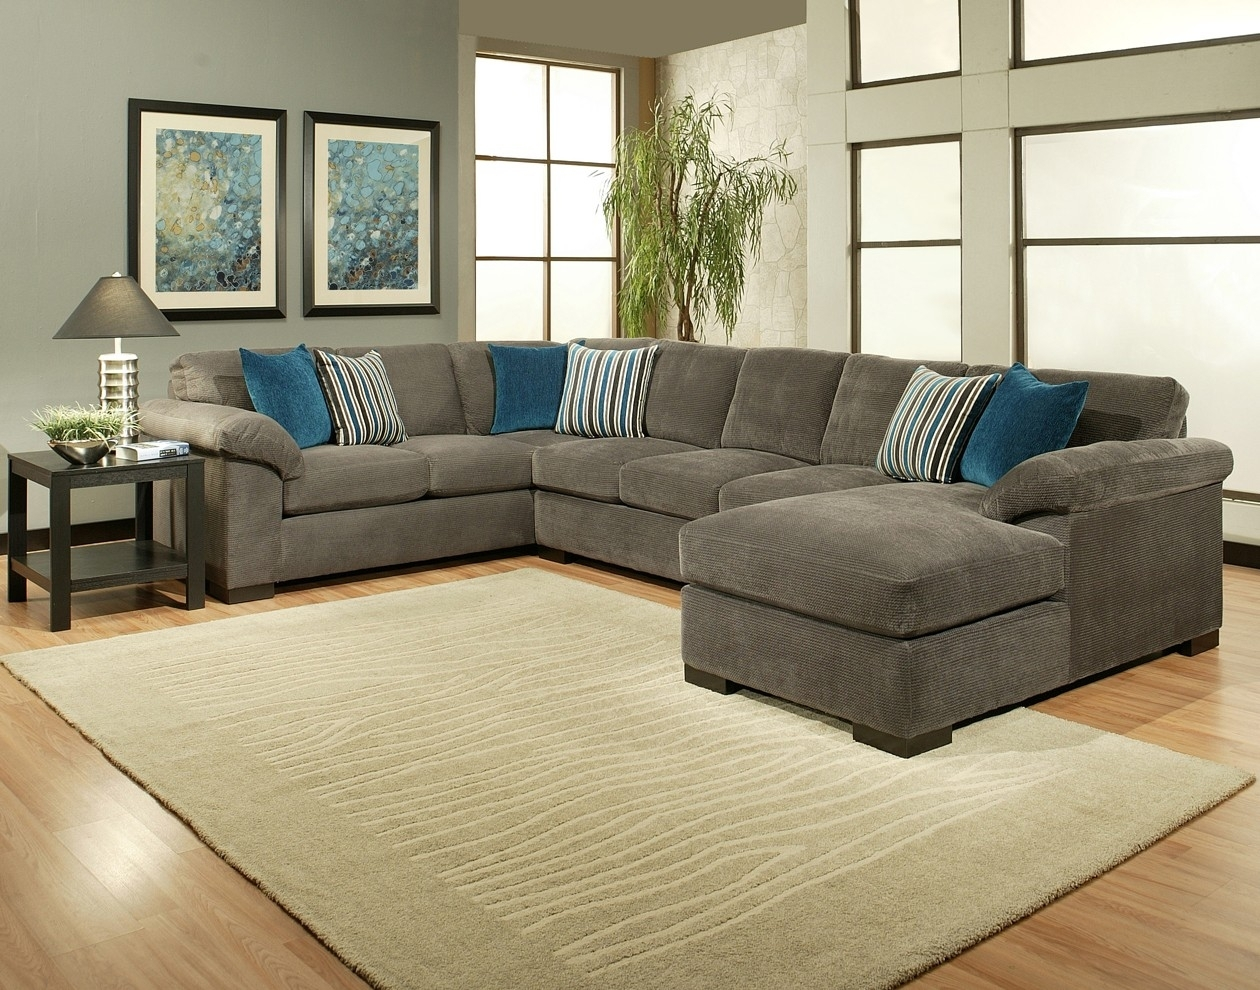 Comfort Industries 3 Pc Fire Fly Sectional Sofa regarding Sierra Foam Ii 3 Piece Sectionals (Image 9 of 30)